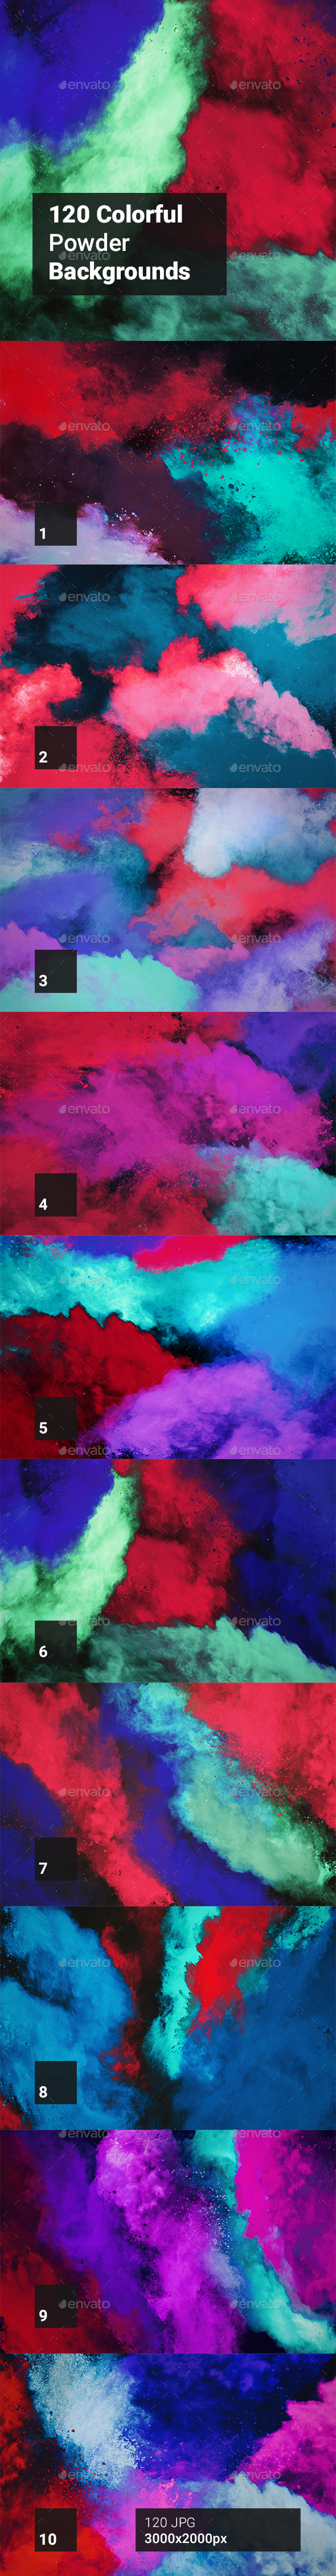 120 Colorful Powder Backgrounds - Abstract Backgrounds